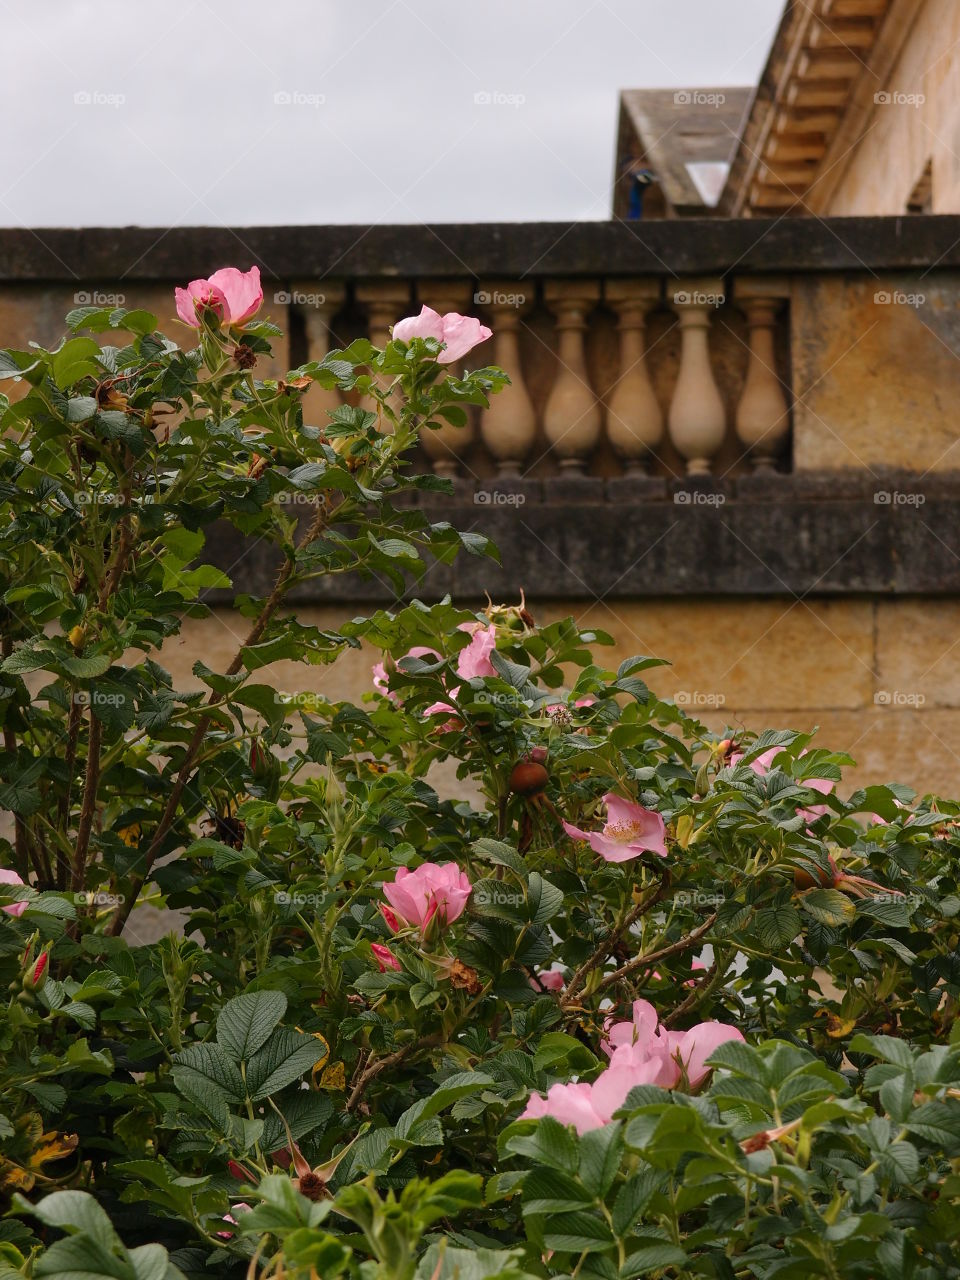 A pretty rose bush with beautiful pink rose blooms against in the gardens against an old stone wall on a summer day.